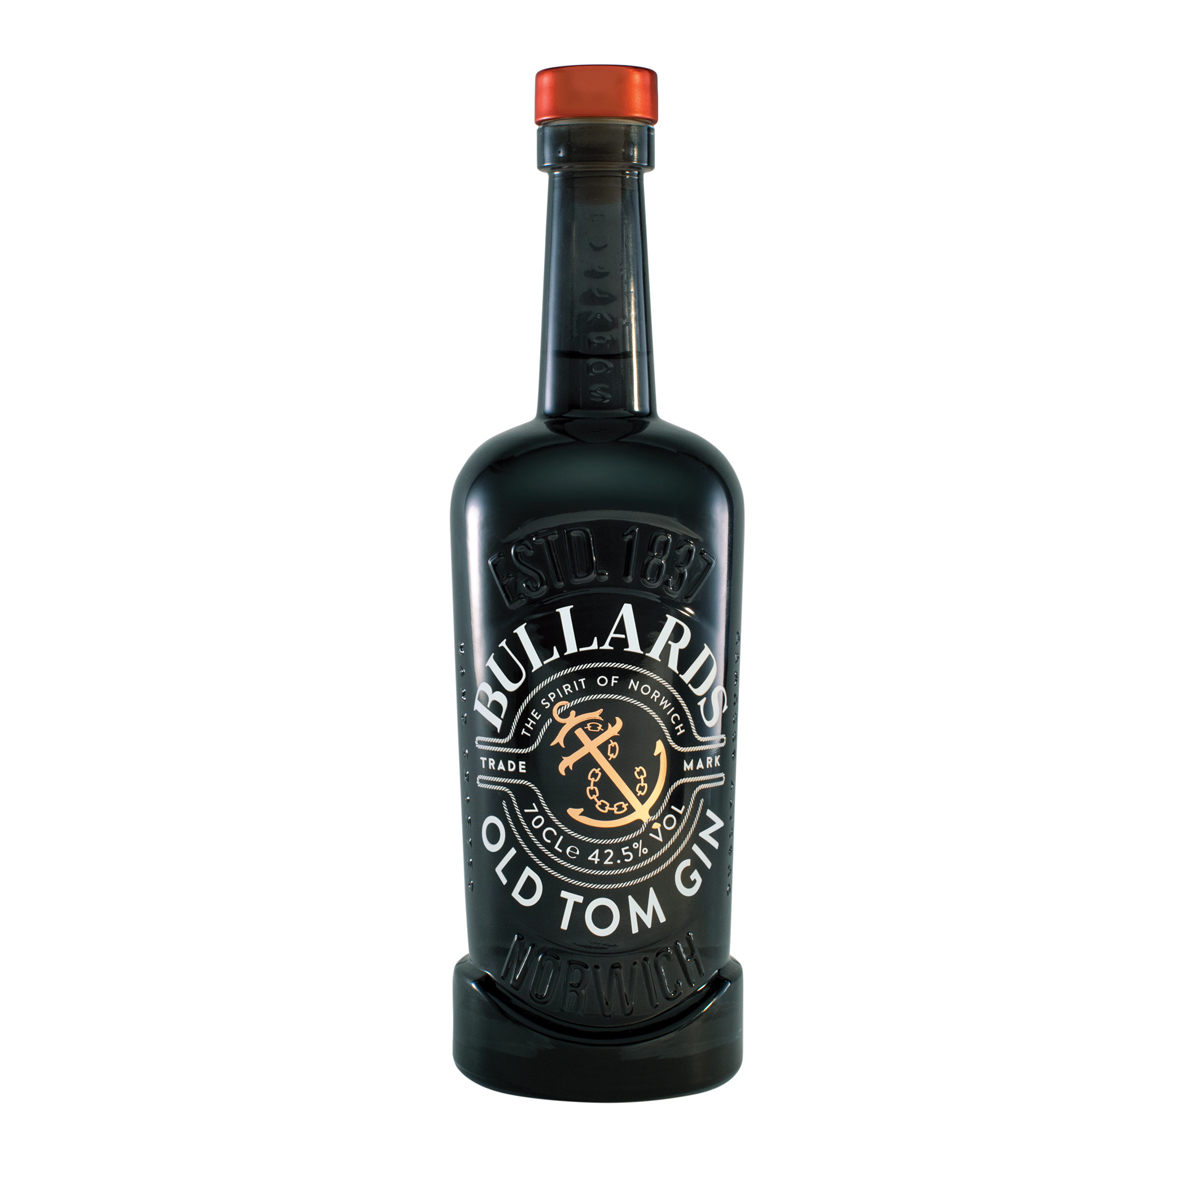 An image of Bullards Old Tom Gin: 70cl